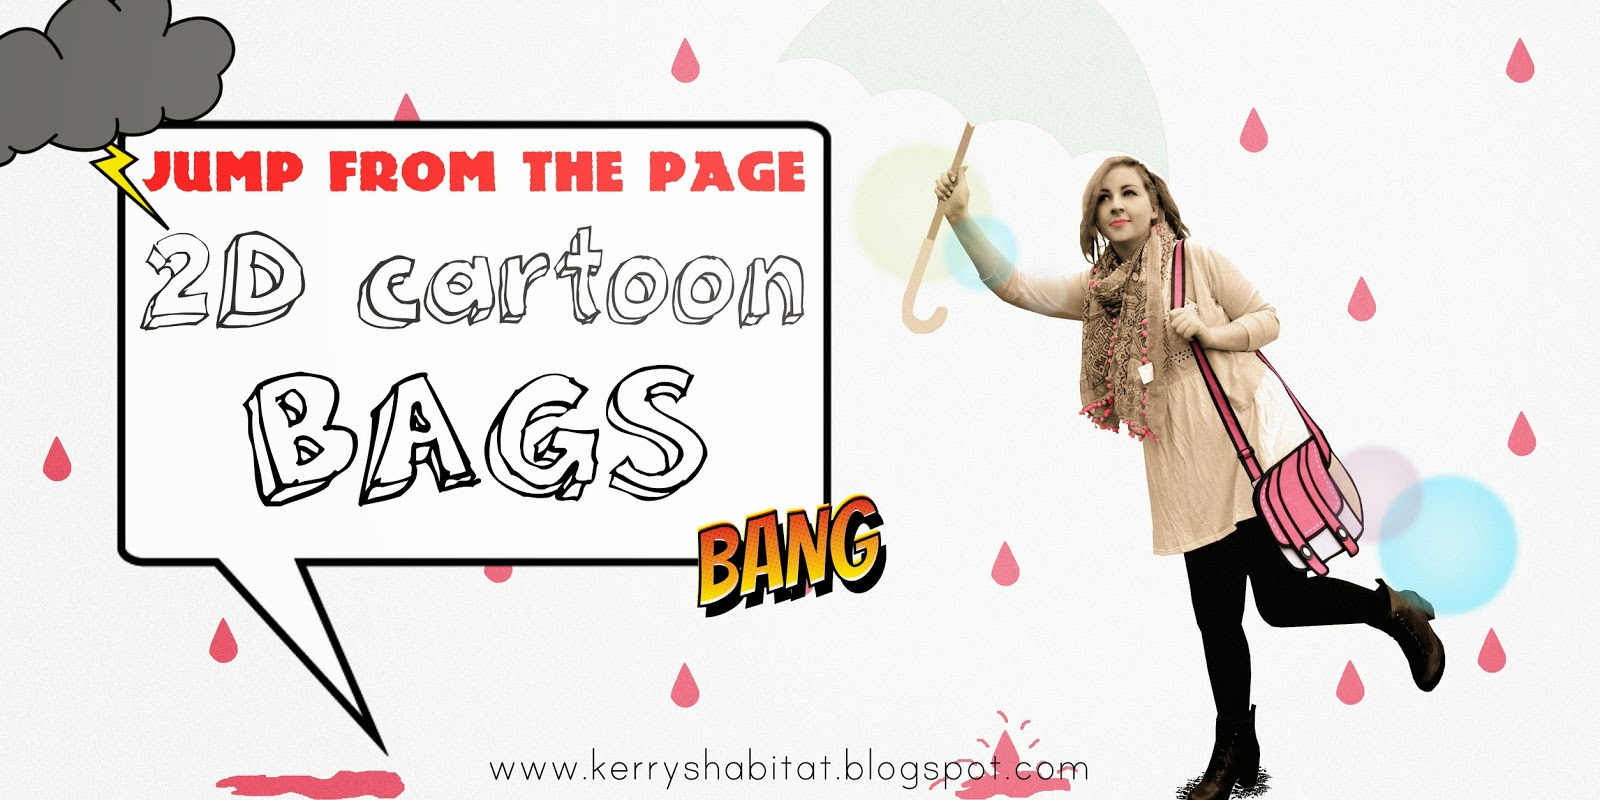 http://kerryshabitat.blogspot.co.uk/2014/06/jump-from-page-2d-bags.html